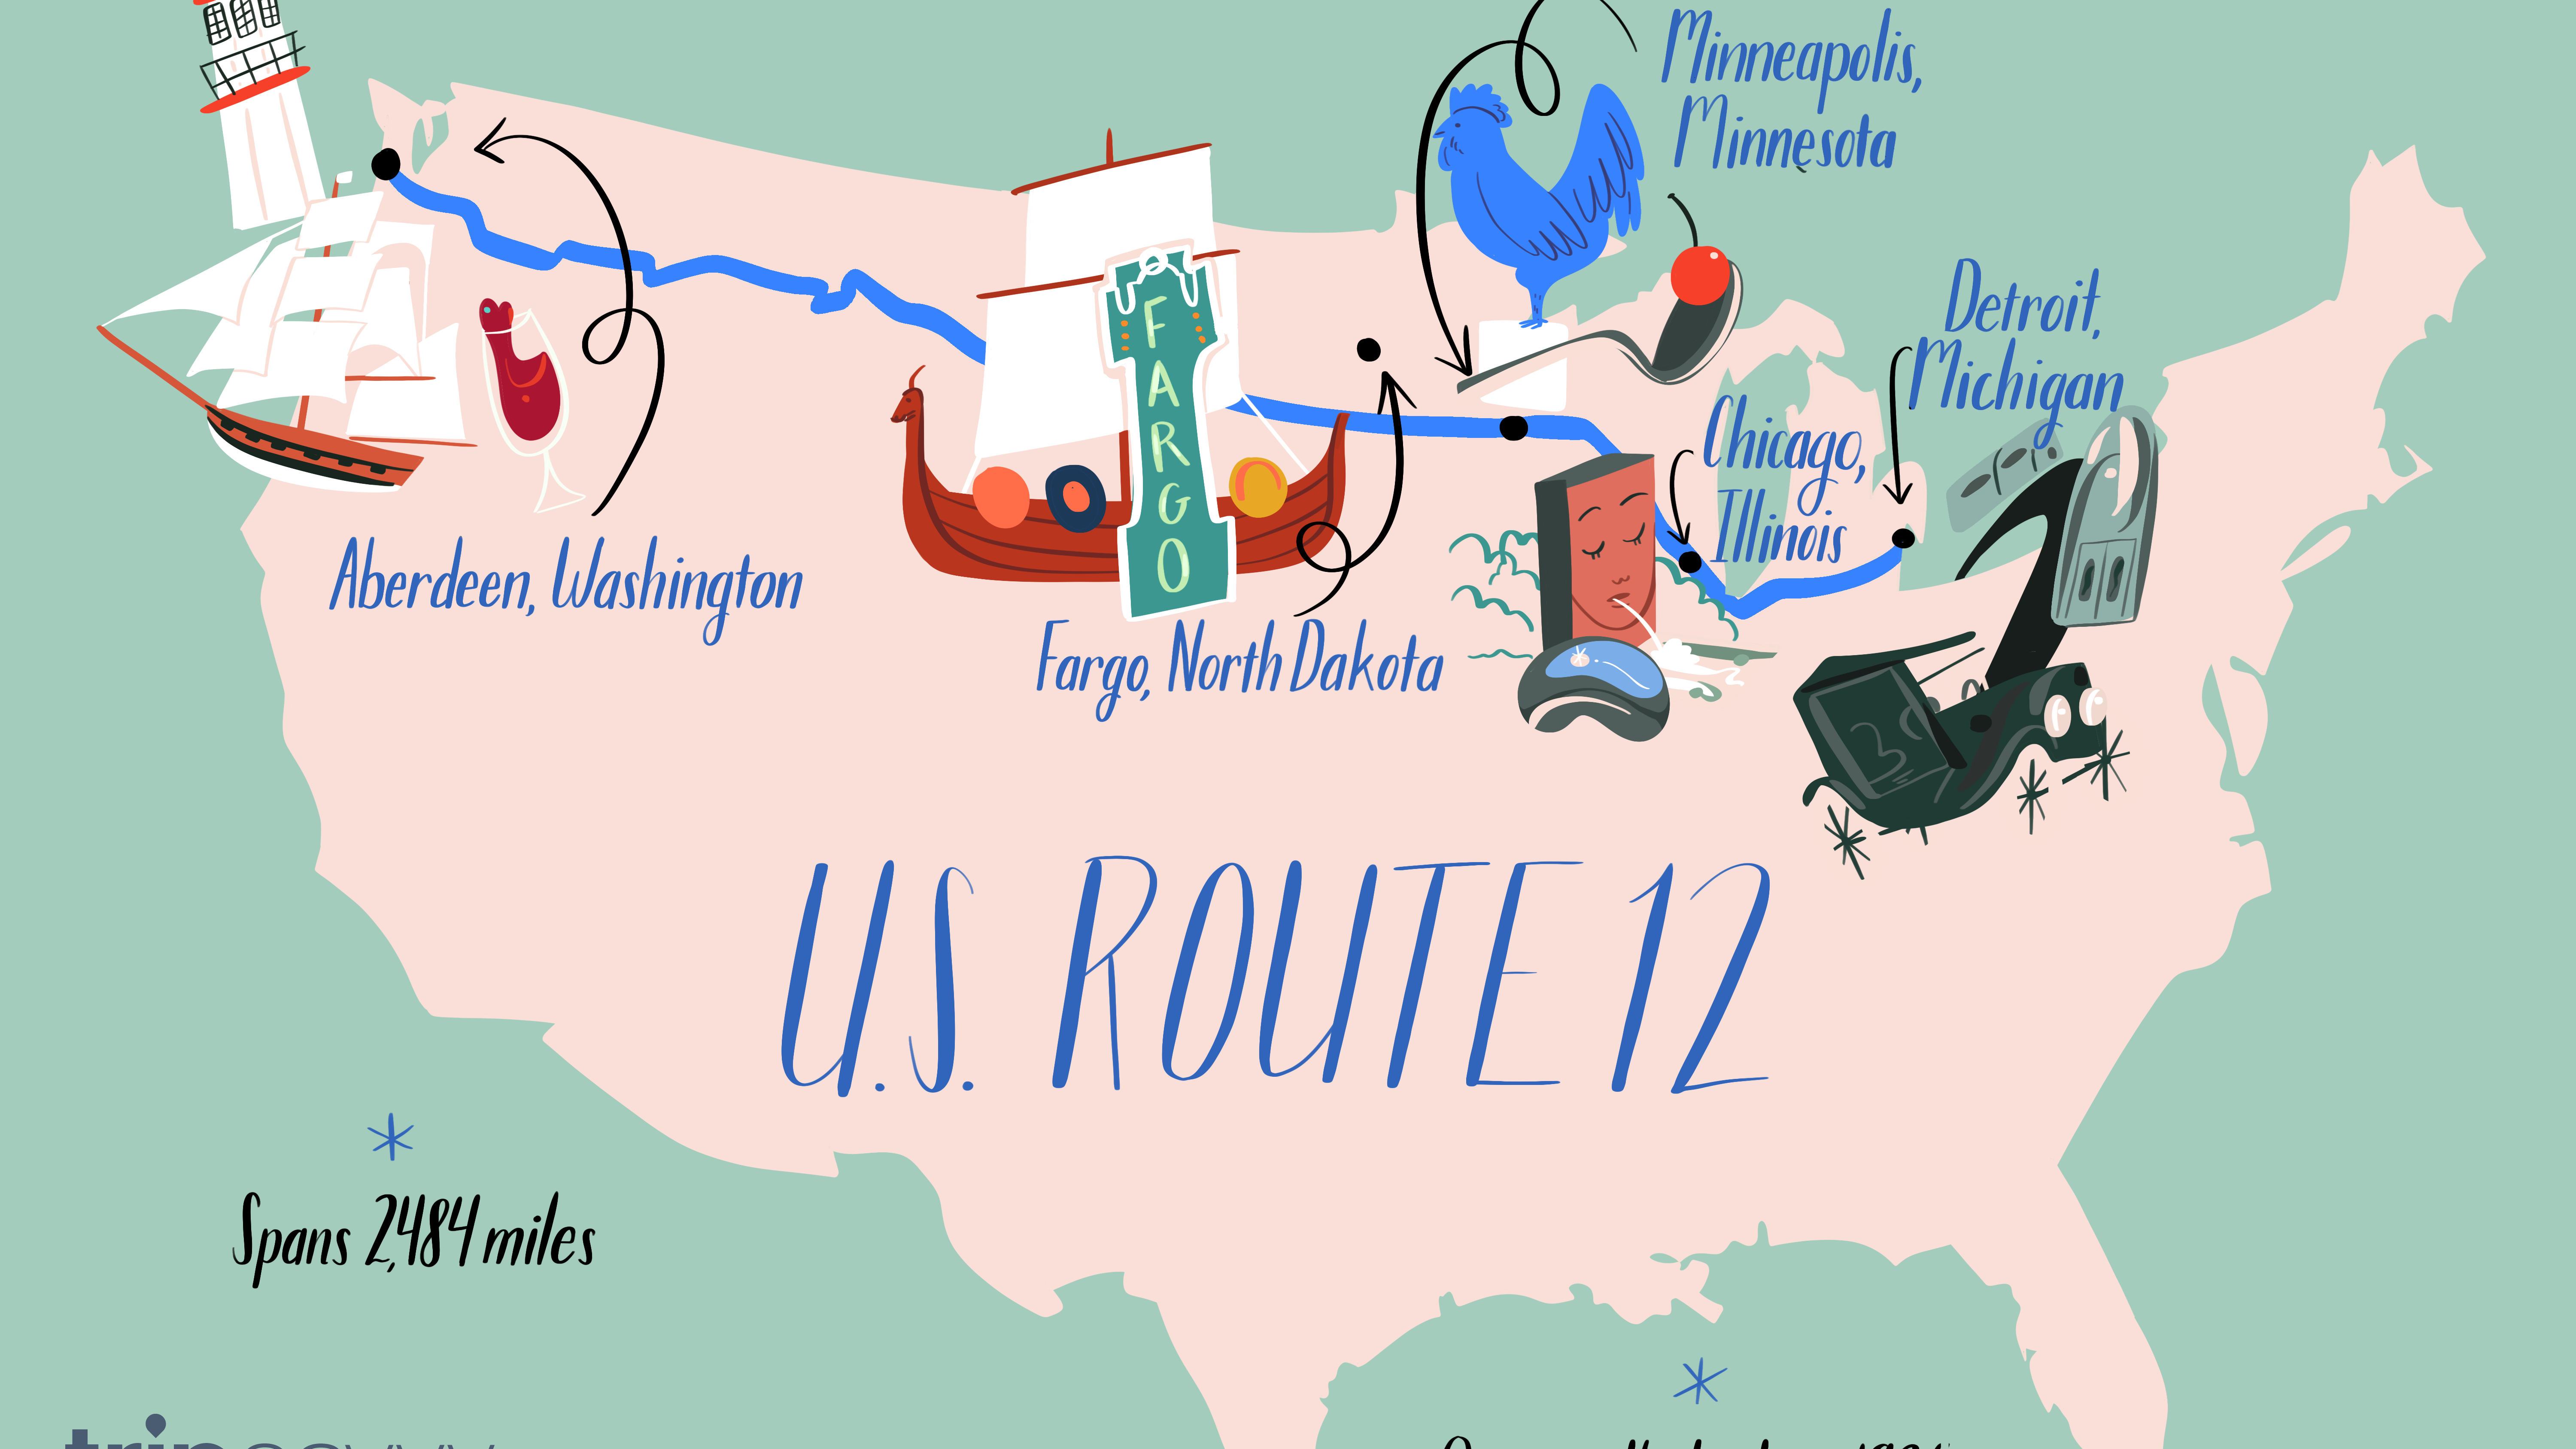 Your Guide To The U S Route 12 Road Trip